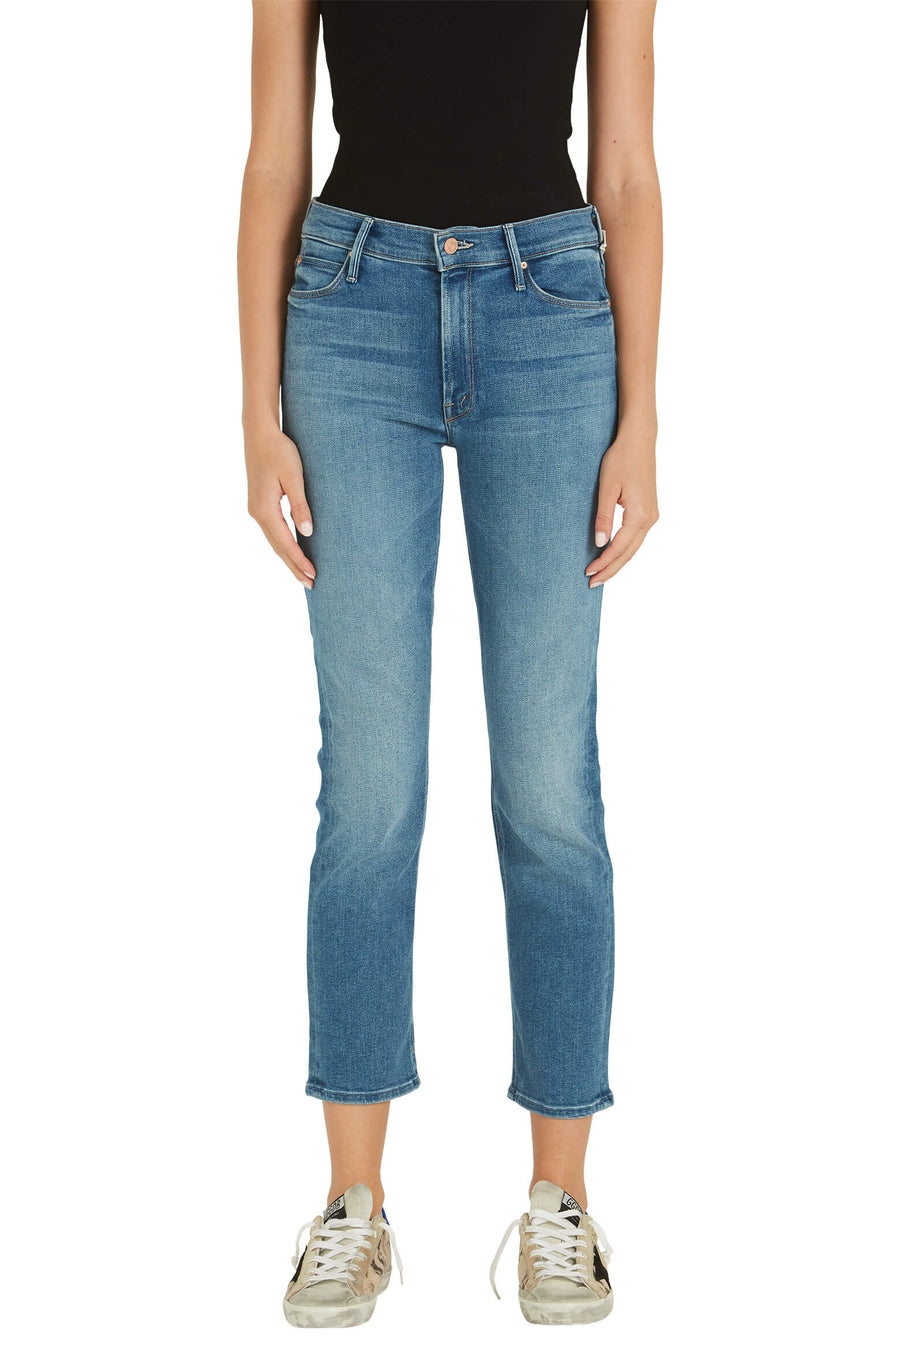 Mother Denim Mid Rise Dazzler Ankle Denim Jean from The New Trend